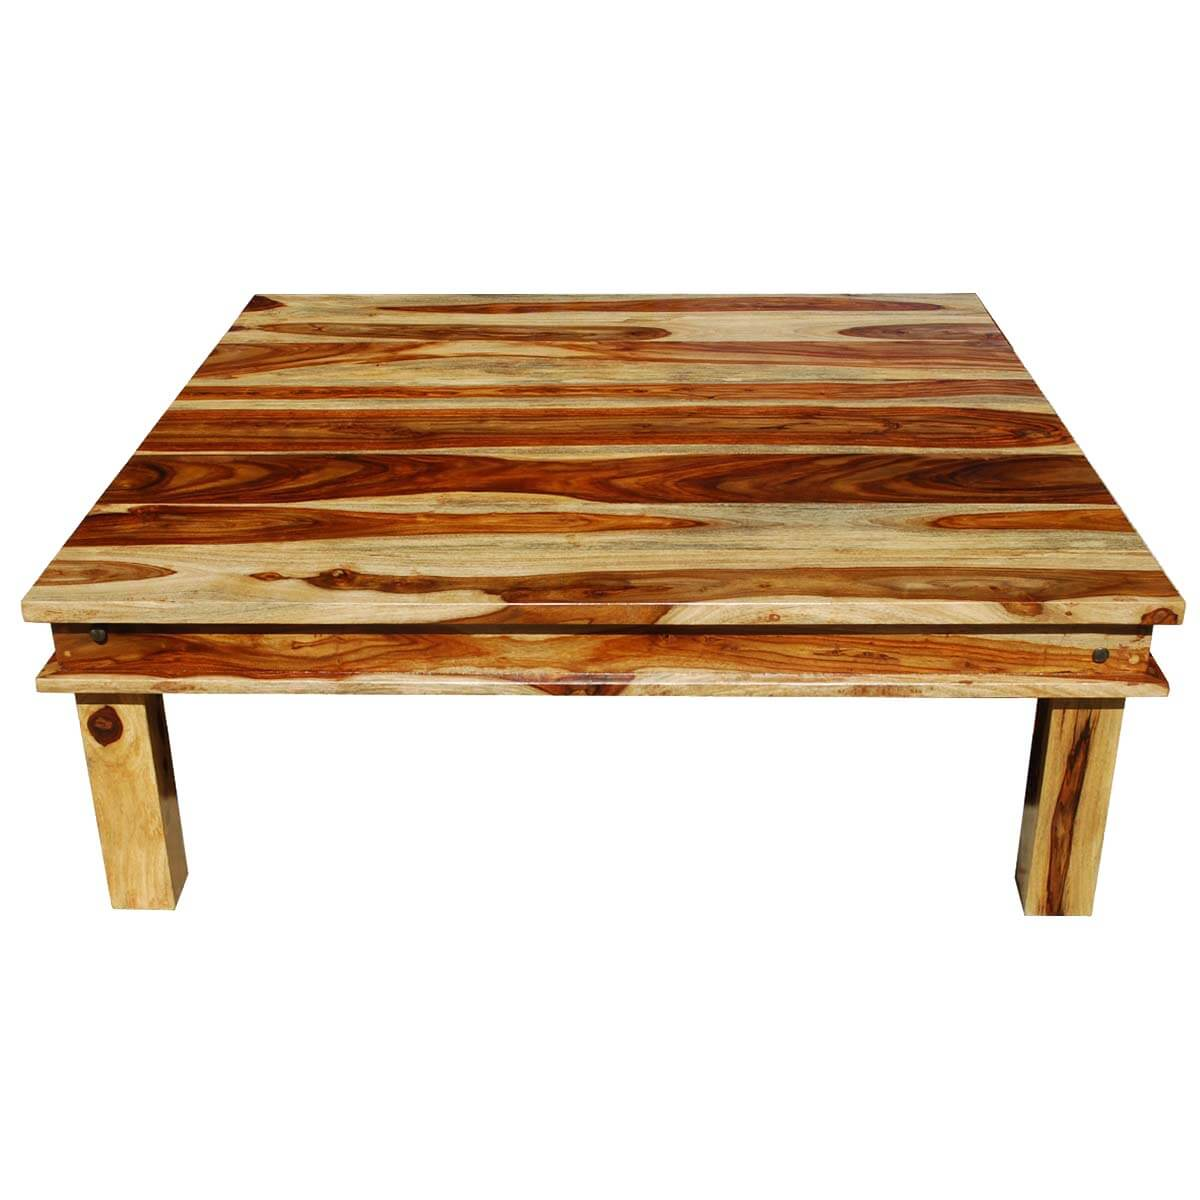 Http Sierralivingconcepts Com P 4627 Solid Hardwood Large Square Cocktail Sofa Coffee Table Aspx